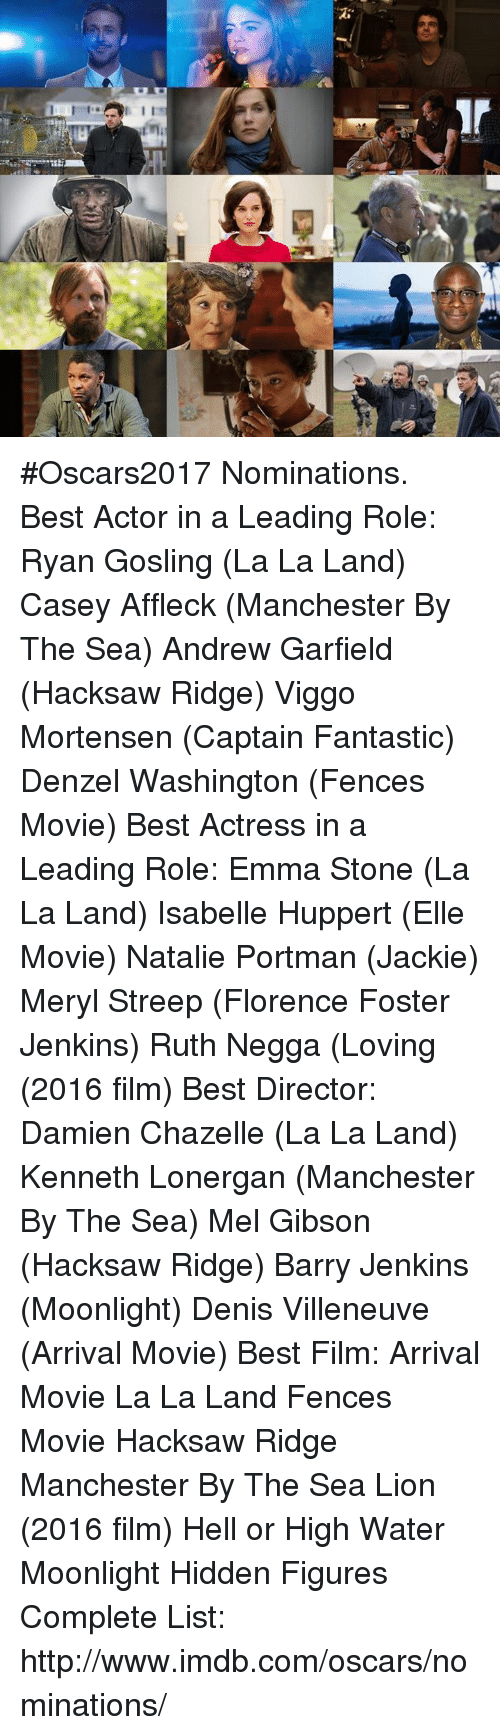 Denzel Washington, Memes, and Oscars: 1 I #Oscars2017 Nominations.  Best Actor in a Leading Role: Ryan Gosling (La La Land) Casey Affleck (Manchester By The Sea) Andrew Garfield (Hacksaw Ridge) Viggo Mortensen (Captain Fantastic) Denzel Washington (Fences Movie)  Best Actress in a Leading Role: Emma Stone (La La Land) Isabelle Huppert (Elle Movie) Natalie Portman (Jackie) Meryl Streep (Florence Foster Jenkins) Ruth Negga (Loving (2016 film)   Best Director: Damien Chazelle (La La Land) Kenneth Lonergan (Manchester By The Sea) Mel Gibson (Hacksaw Ridge) Barry Jenkins (Moonlight) Denis Villeneuve (Arrival Movie)  Best Film: Arrival Movie La La Land Fences Movie Hacksaw Ridge Manchester By The Sea Lion (2016 film) Hell or High Water Moonlight Hidden Figures  Complete List: http://www.imdb.com/oscars/nominations/